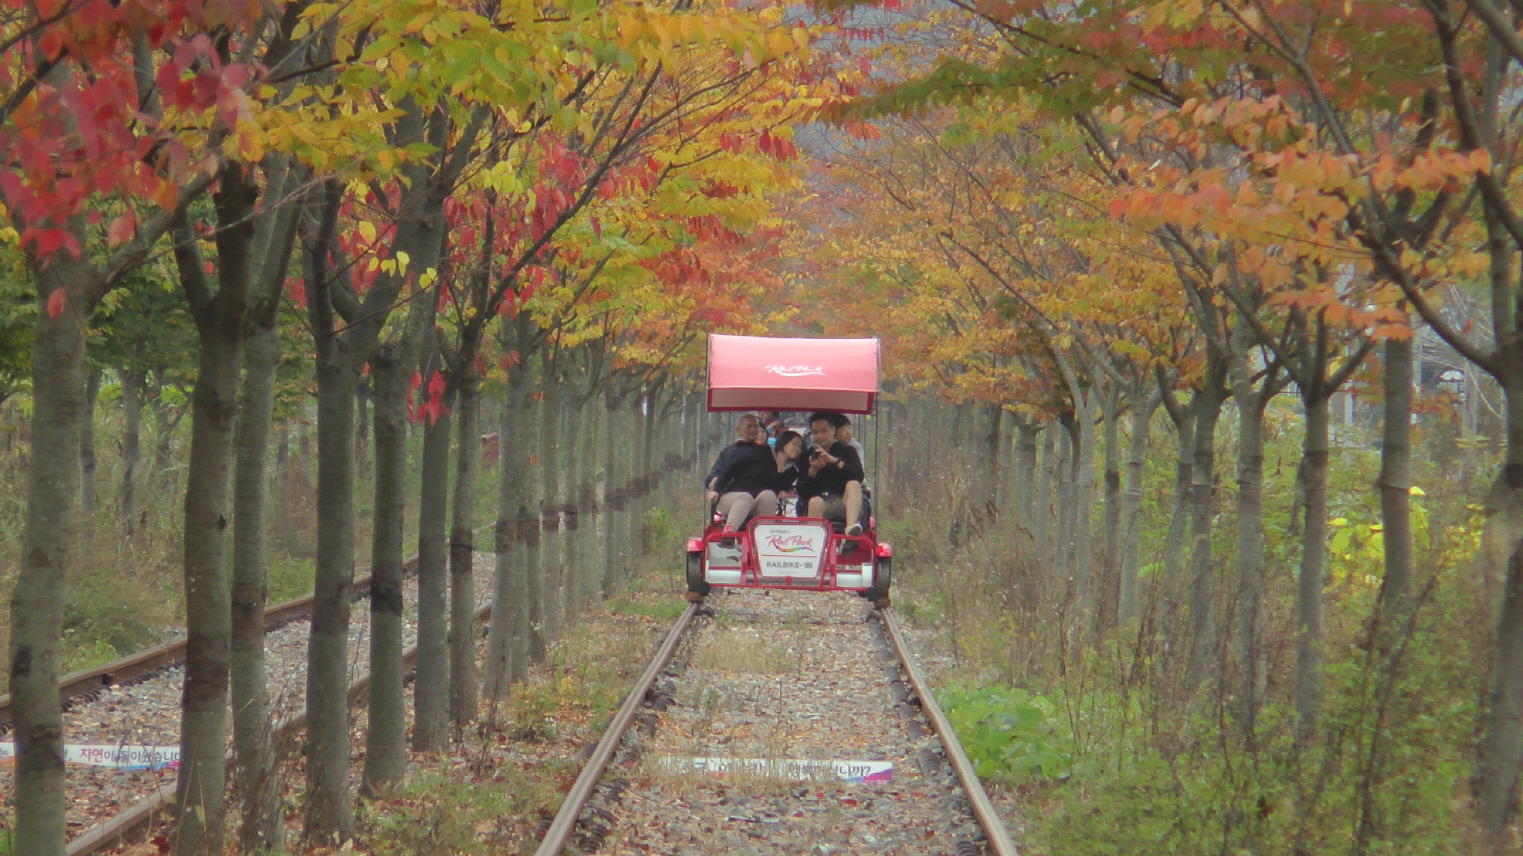 Nami Island + Petite France + Gangchon Rail Bike One Day Tour